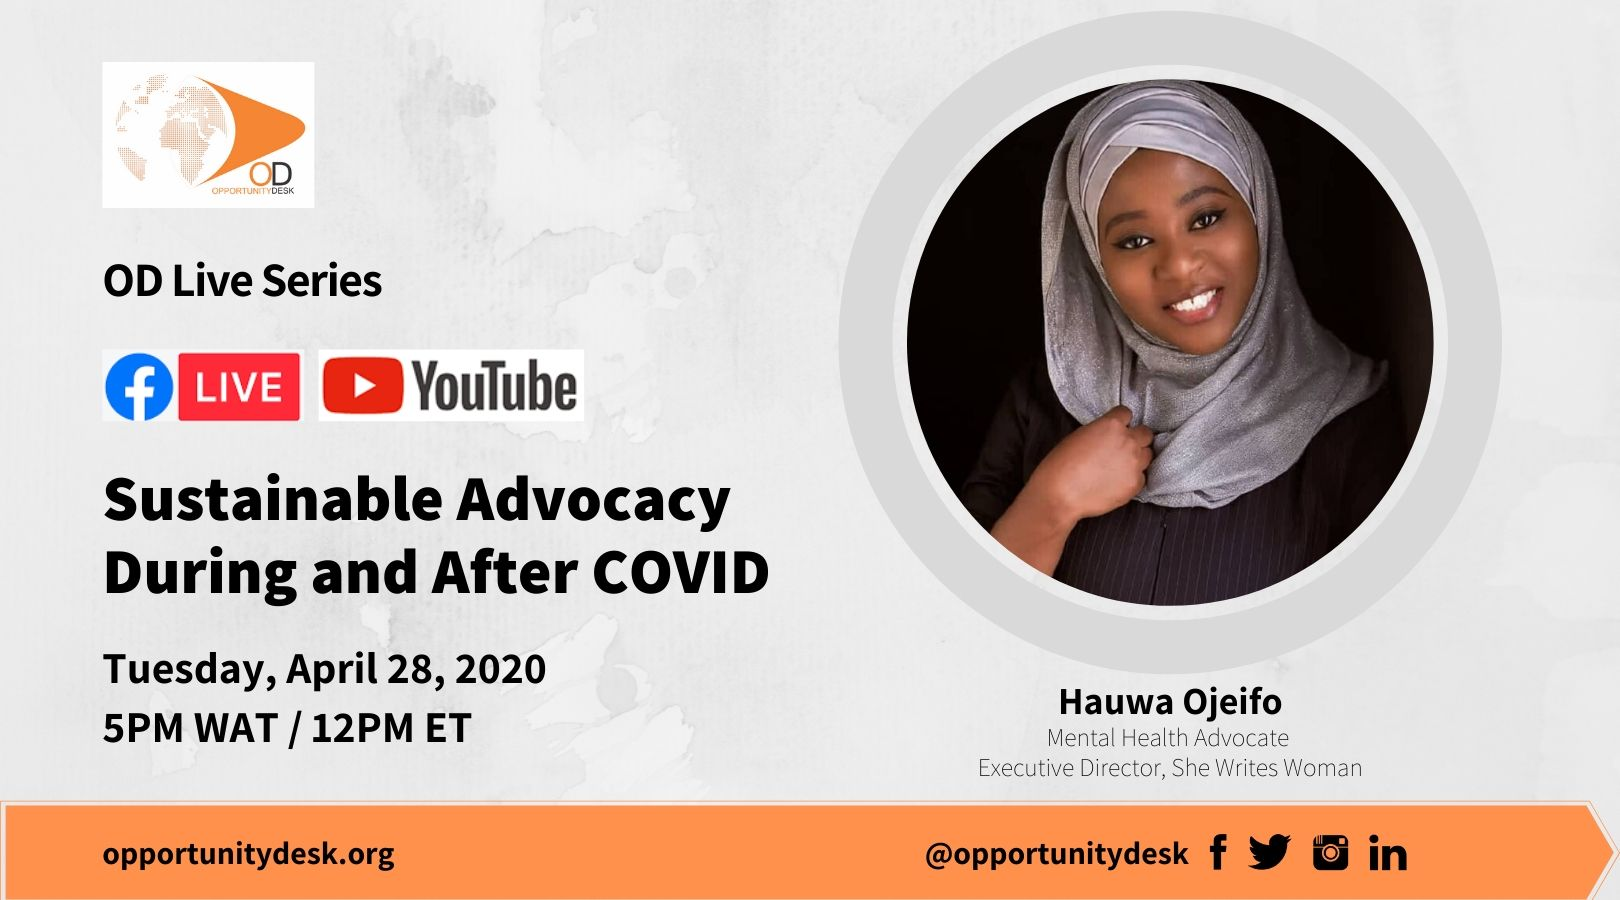 OD Live with Hauwa Ojeifo – Sustainable Advocacy During and After COVID-19